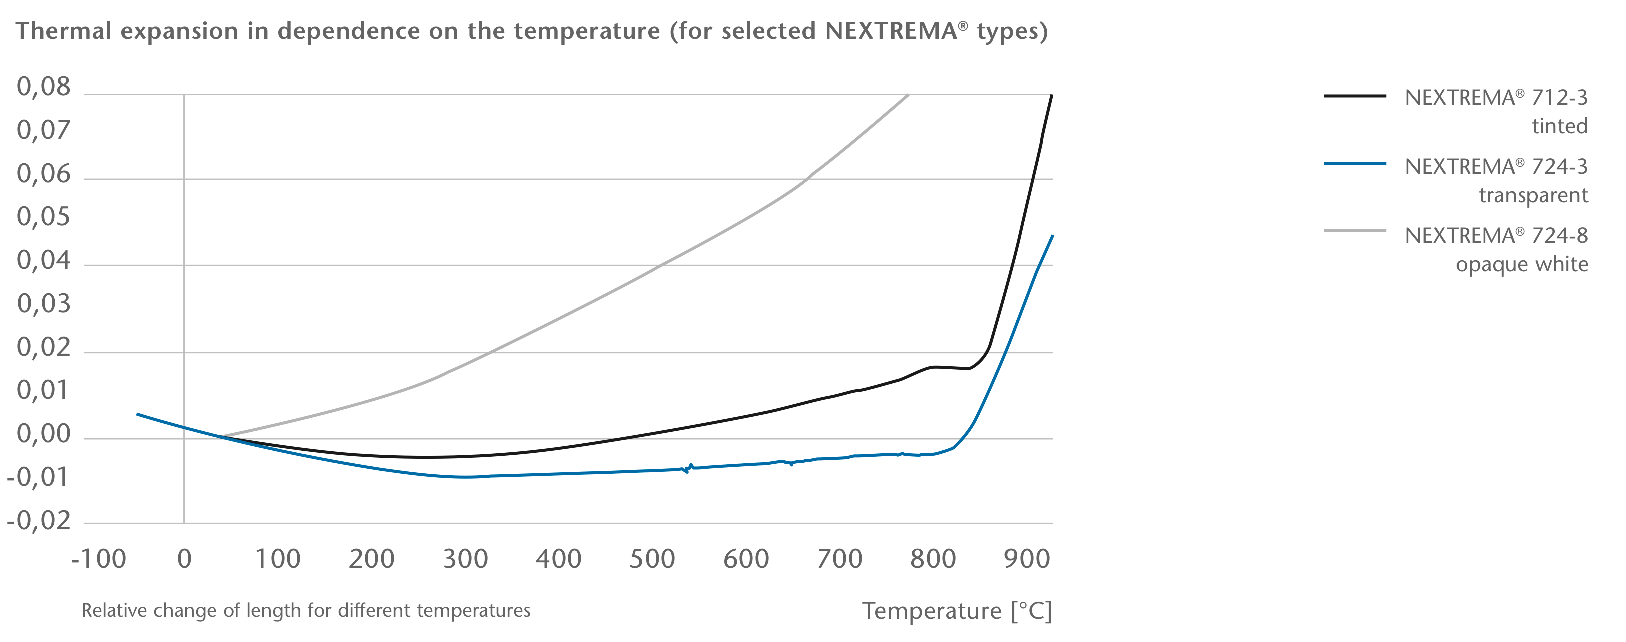 Thermal expansion in dependence on the temperature (for selected NEXTREMA types)